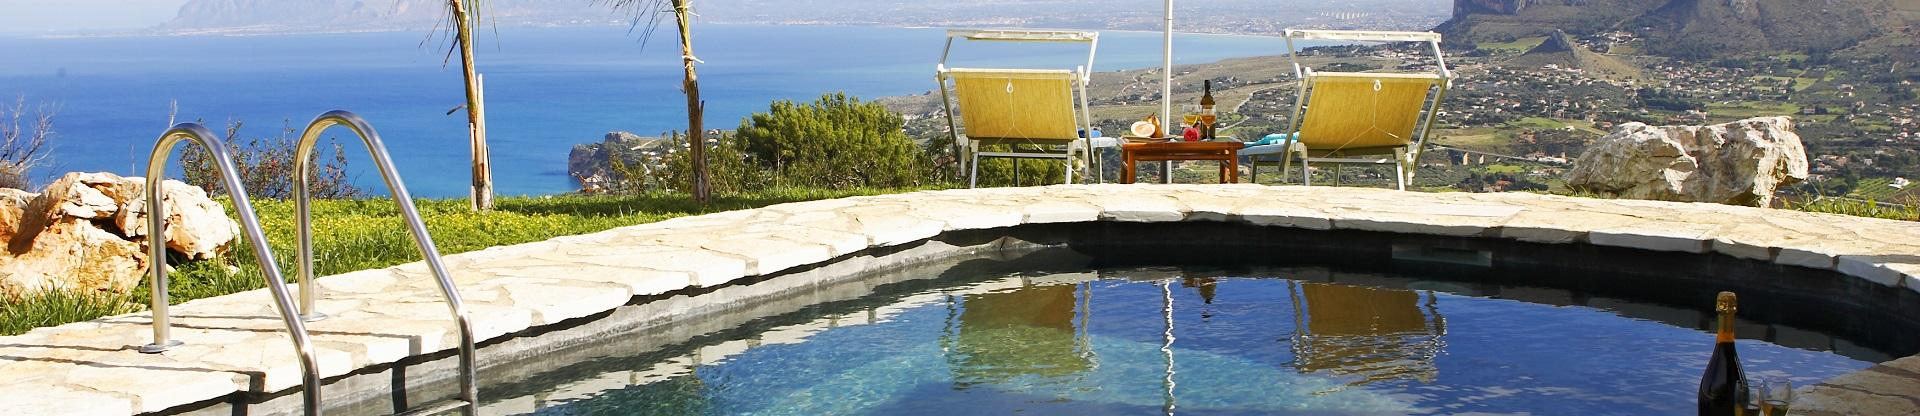 Villas in Sicily with pools near Trapani